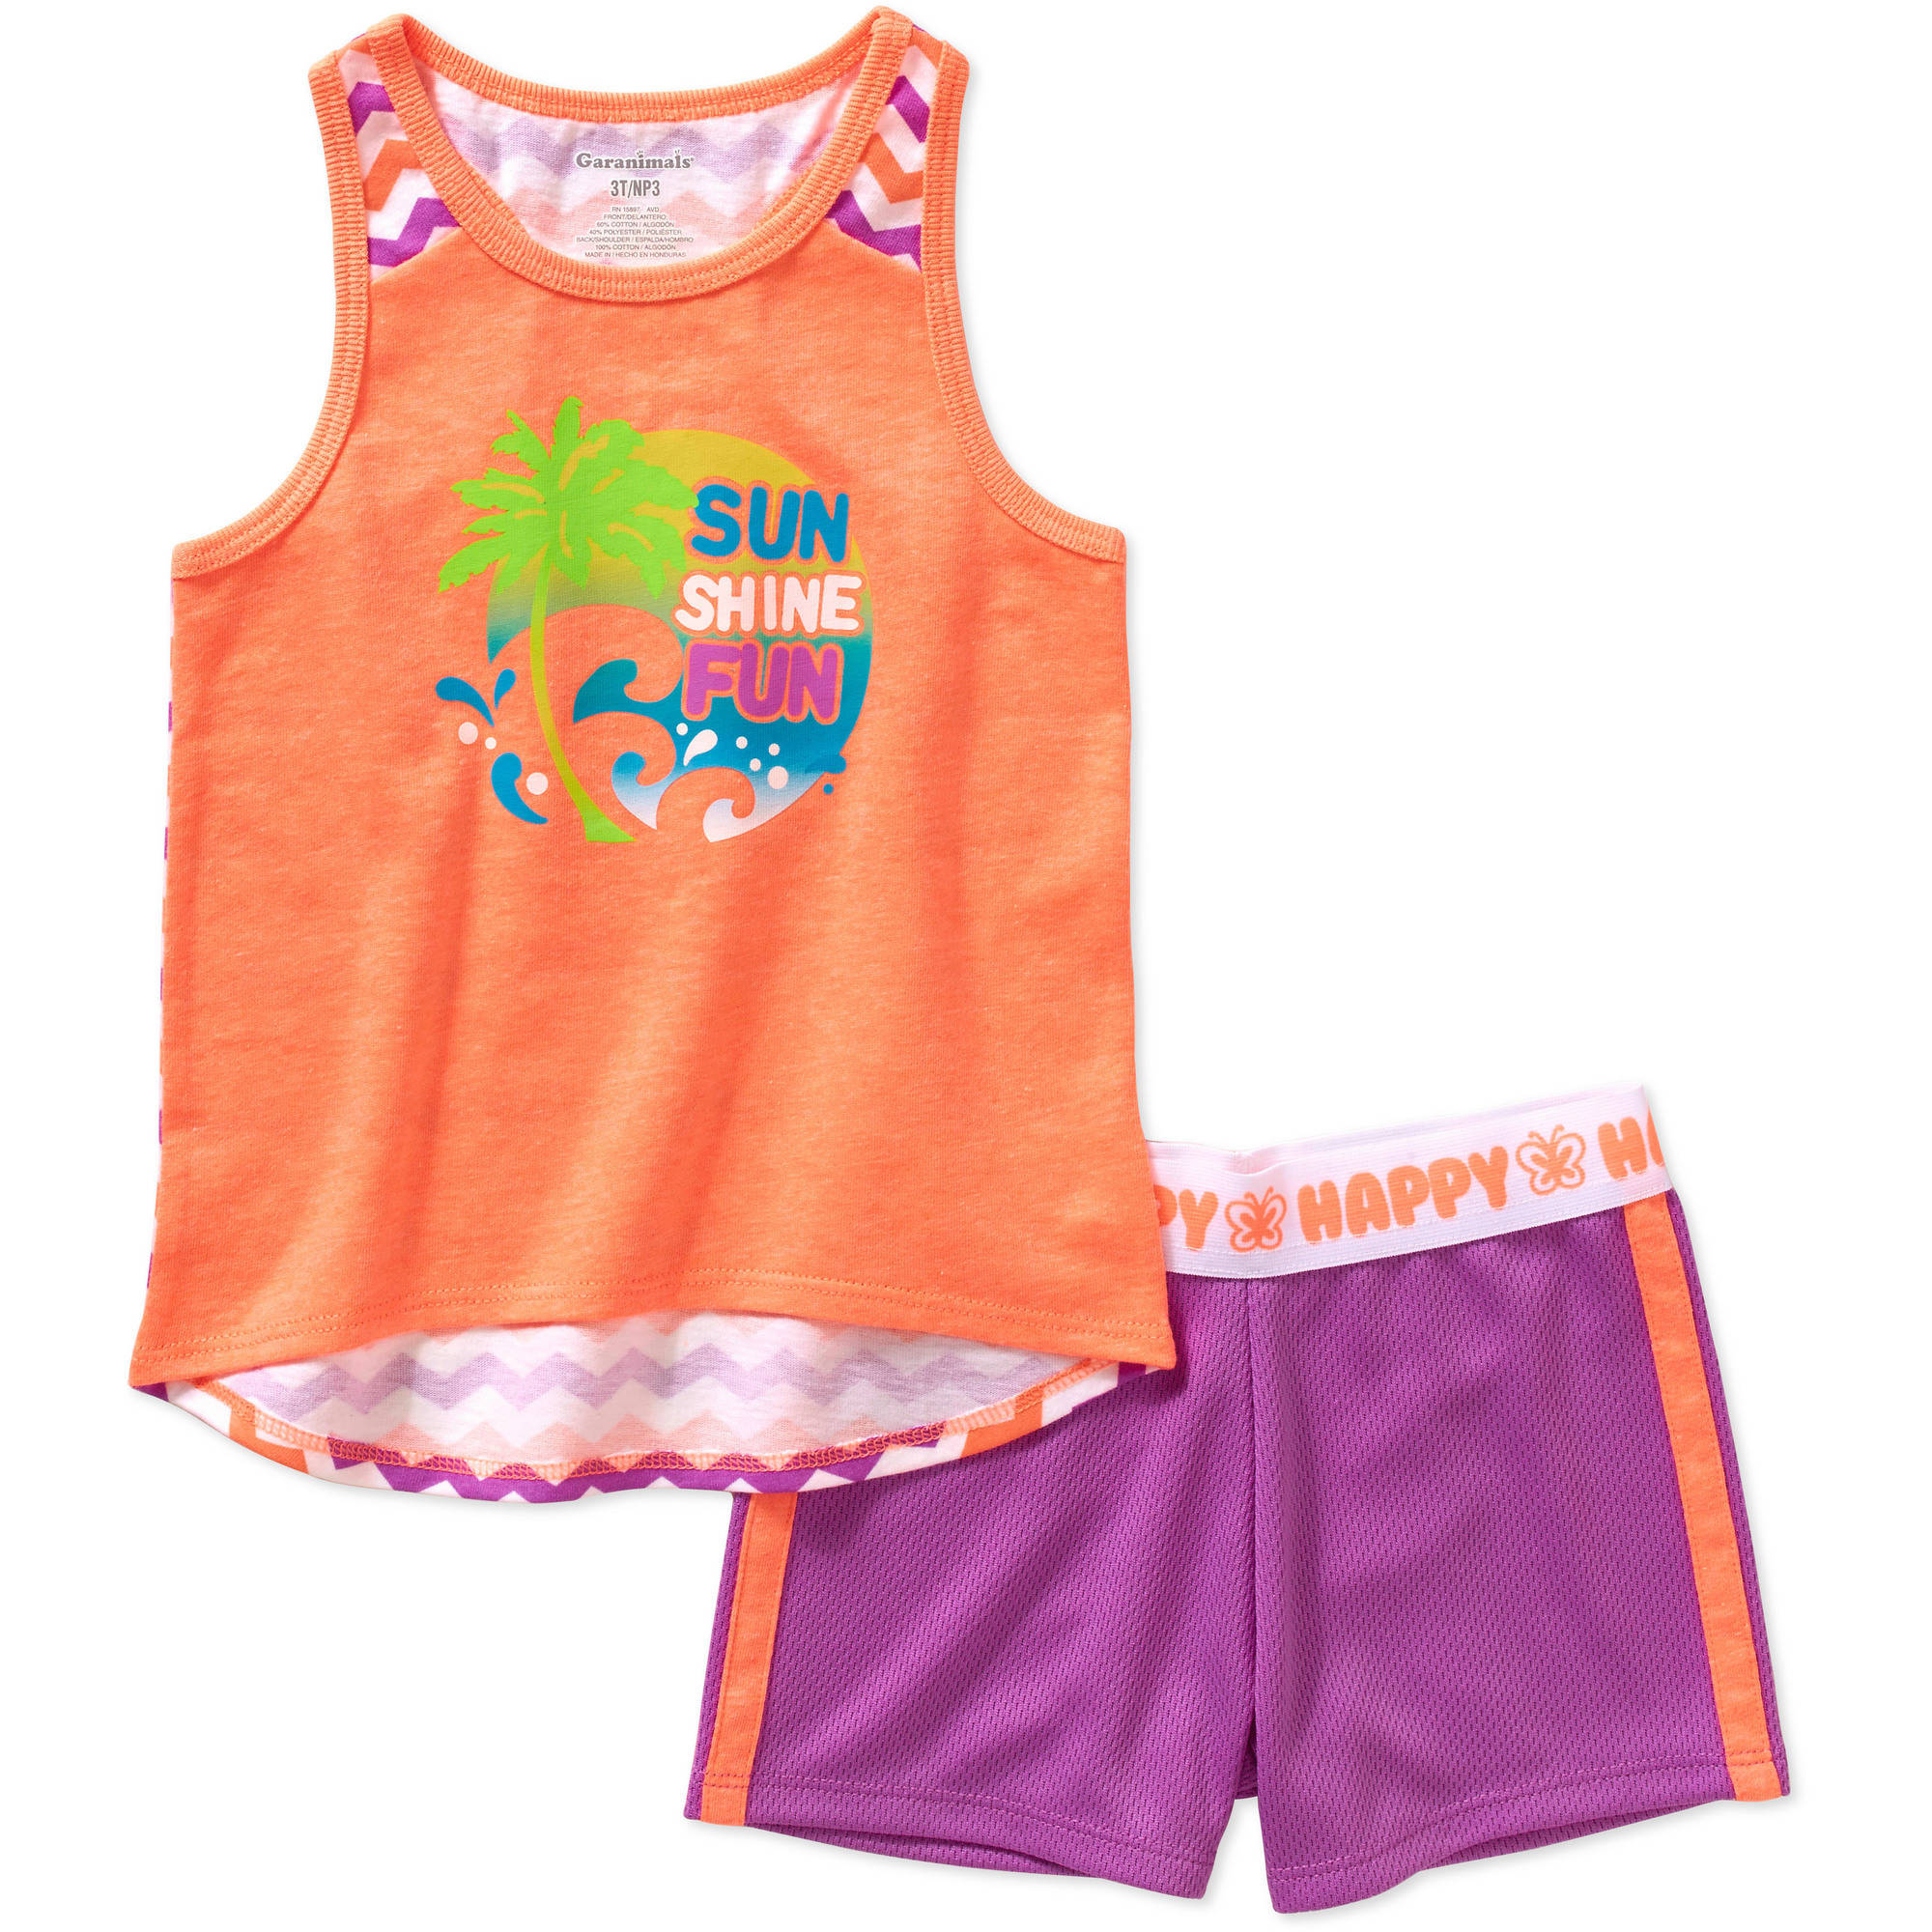 Garanimals Baby Toddler Girl Athletic Tank Top and Mesh Shorts Outfit Set